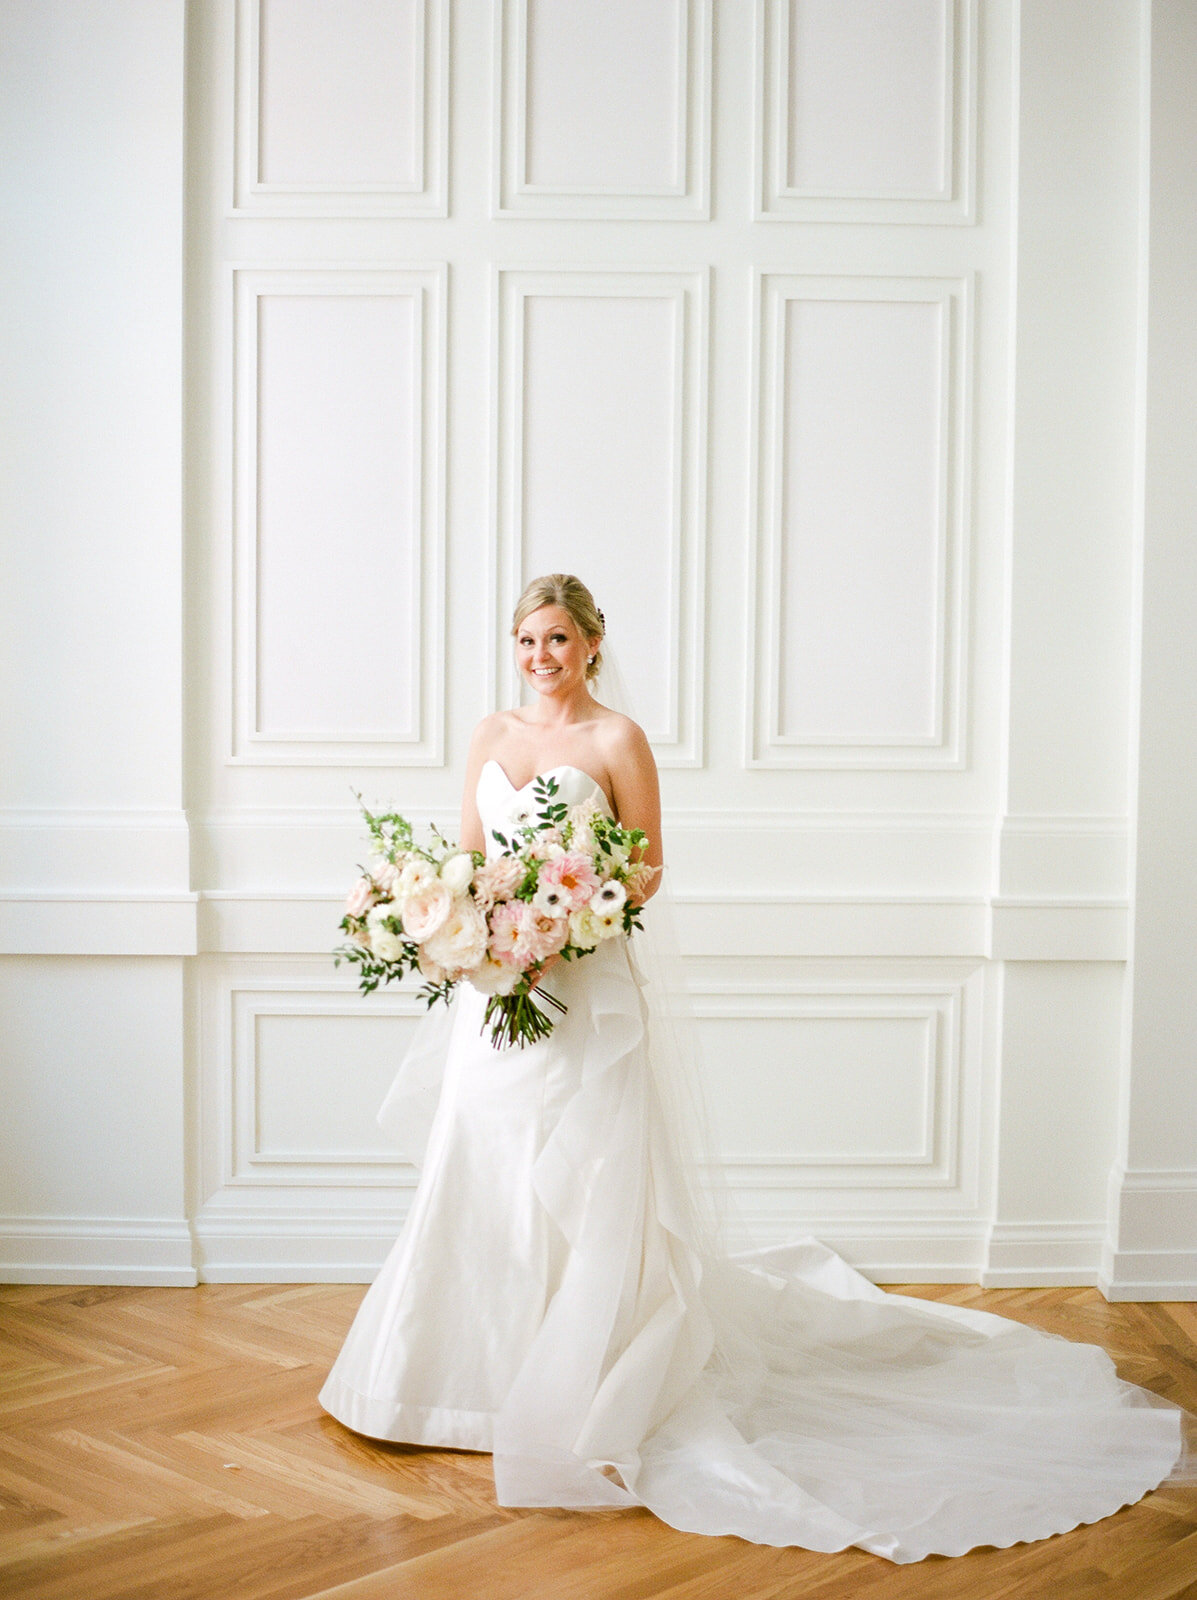 Blush, ivory, and greenery bridal bouquet with dahlias, garden roses, peonies, and anemones. Nashville wedding florist, Rosemary and Finch.